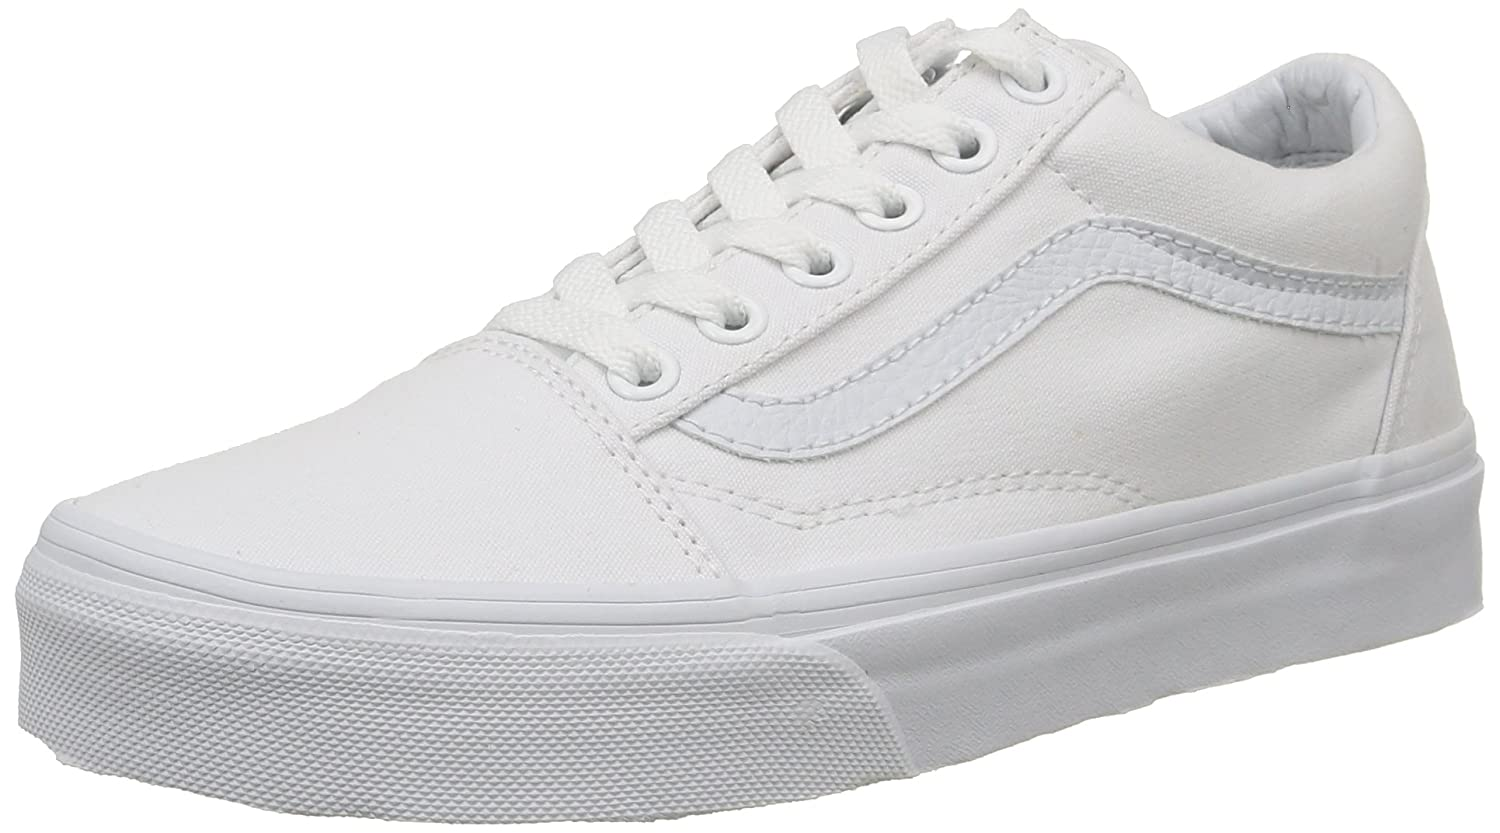 Vans Unisex-Erwachsene Old Skool Classic Canvas Sneakers  48 EU|Wei? (True White)